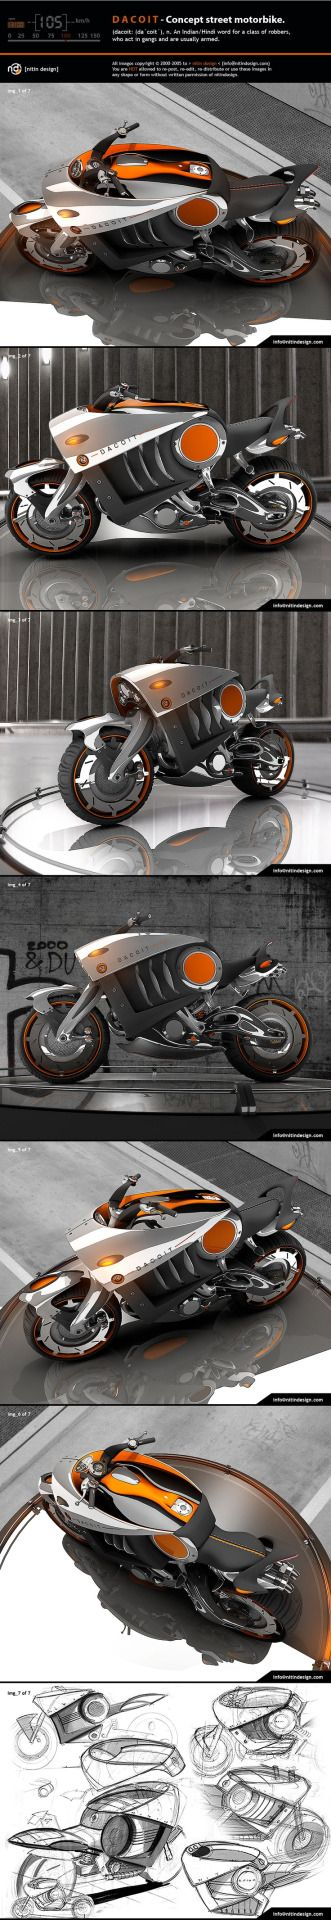 Concept Motorcycle : Photo